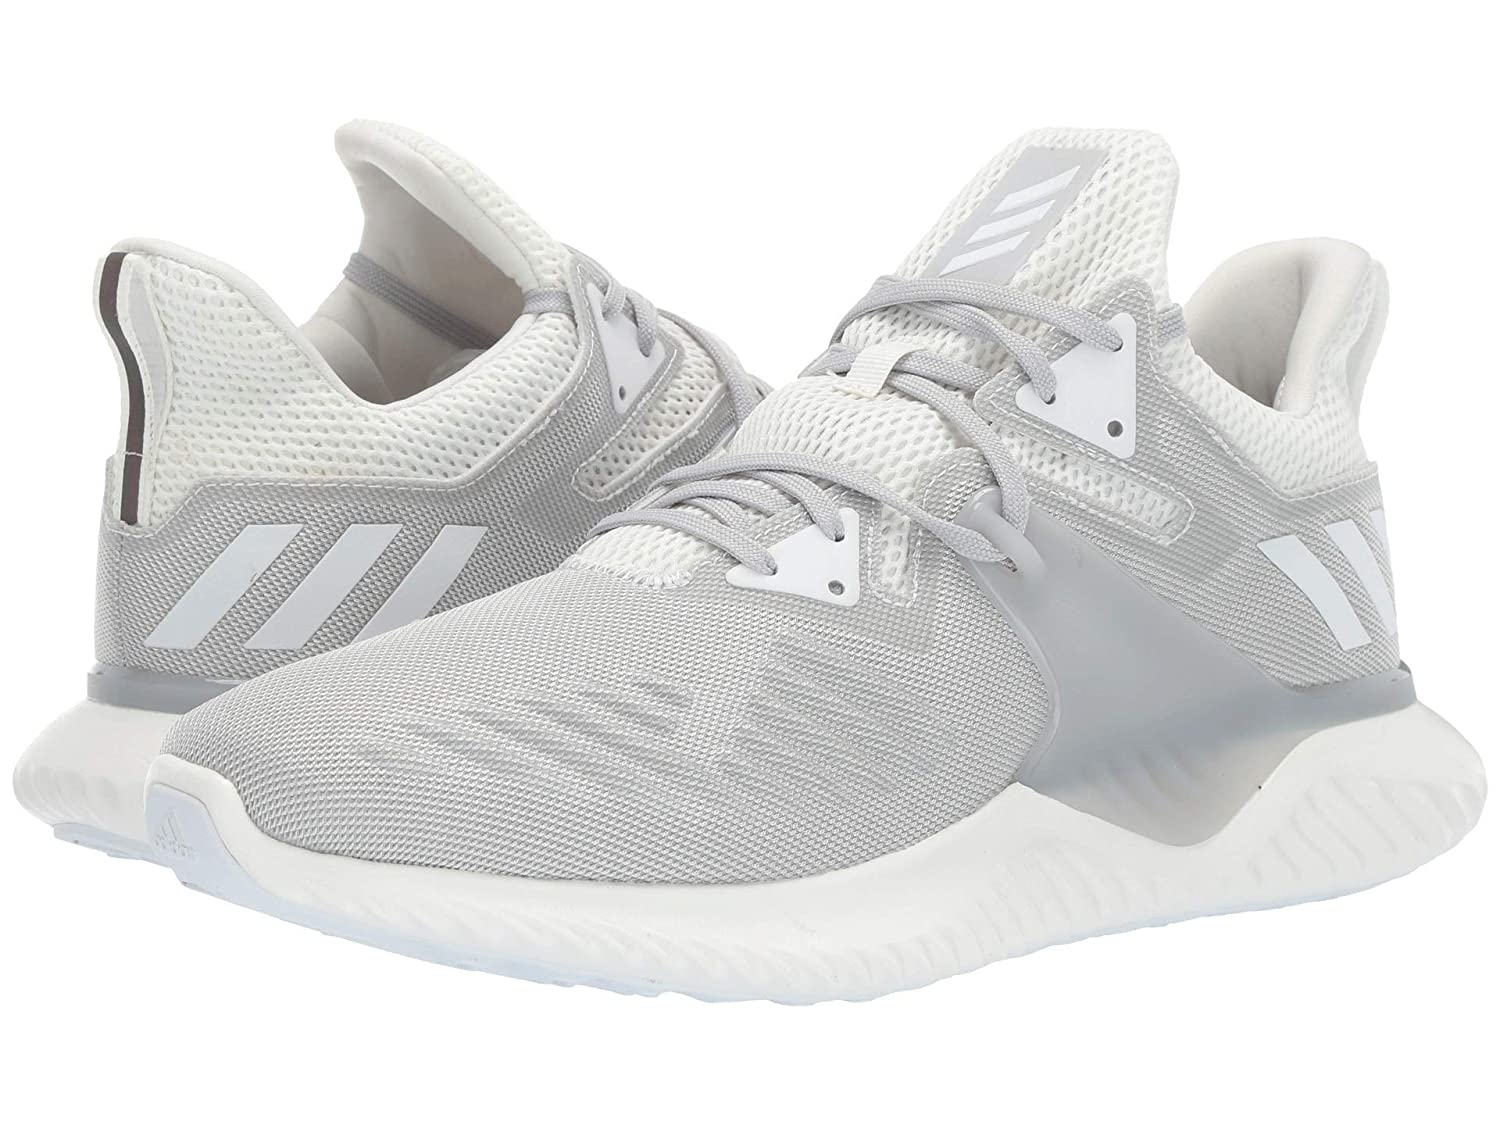 大洲市 [アディダス] メンズランニングシューズスニーカー靴 Alphabounce White/Footwear Beyond Two 2 [並行輸入品] B07N8GHFN4 White/Grey Footwear White/Footwear White/Grey Two 30.5 cm D 30.5 cm D|Footwear White/Footwear White/Grey Two, オオアミシラサトマチ:cfd064d0 --- desata.paulsotomayor.net